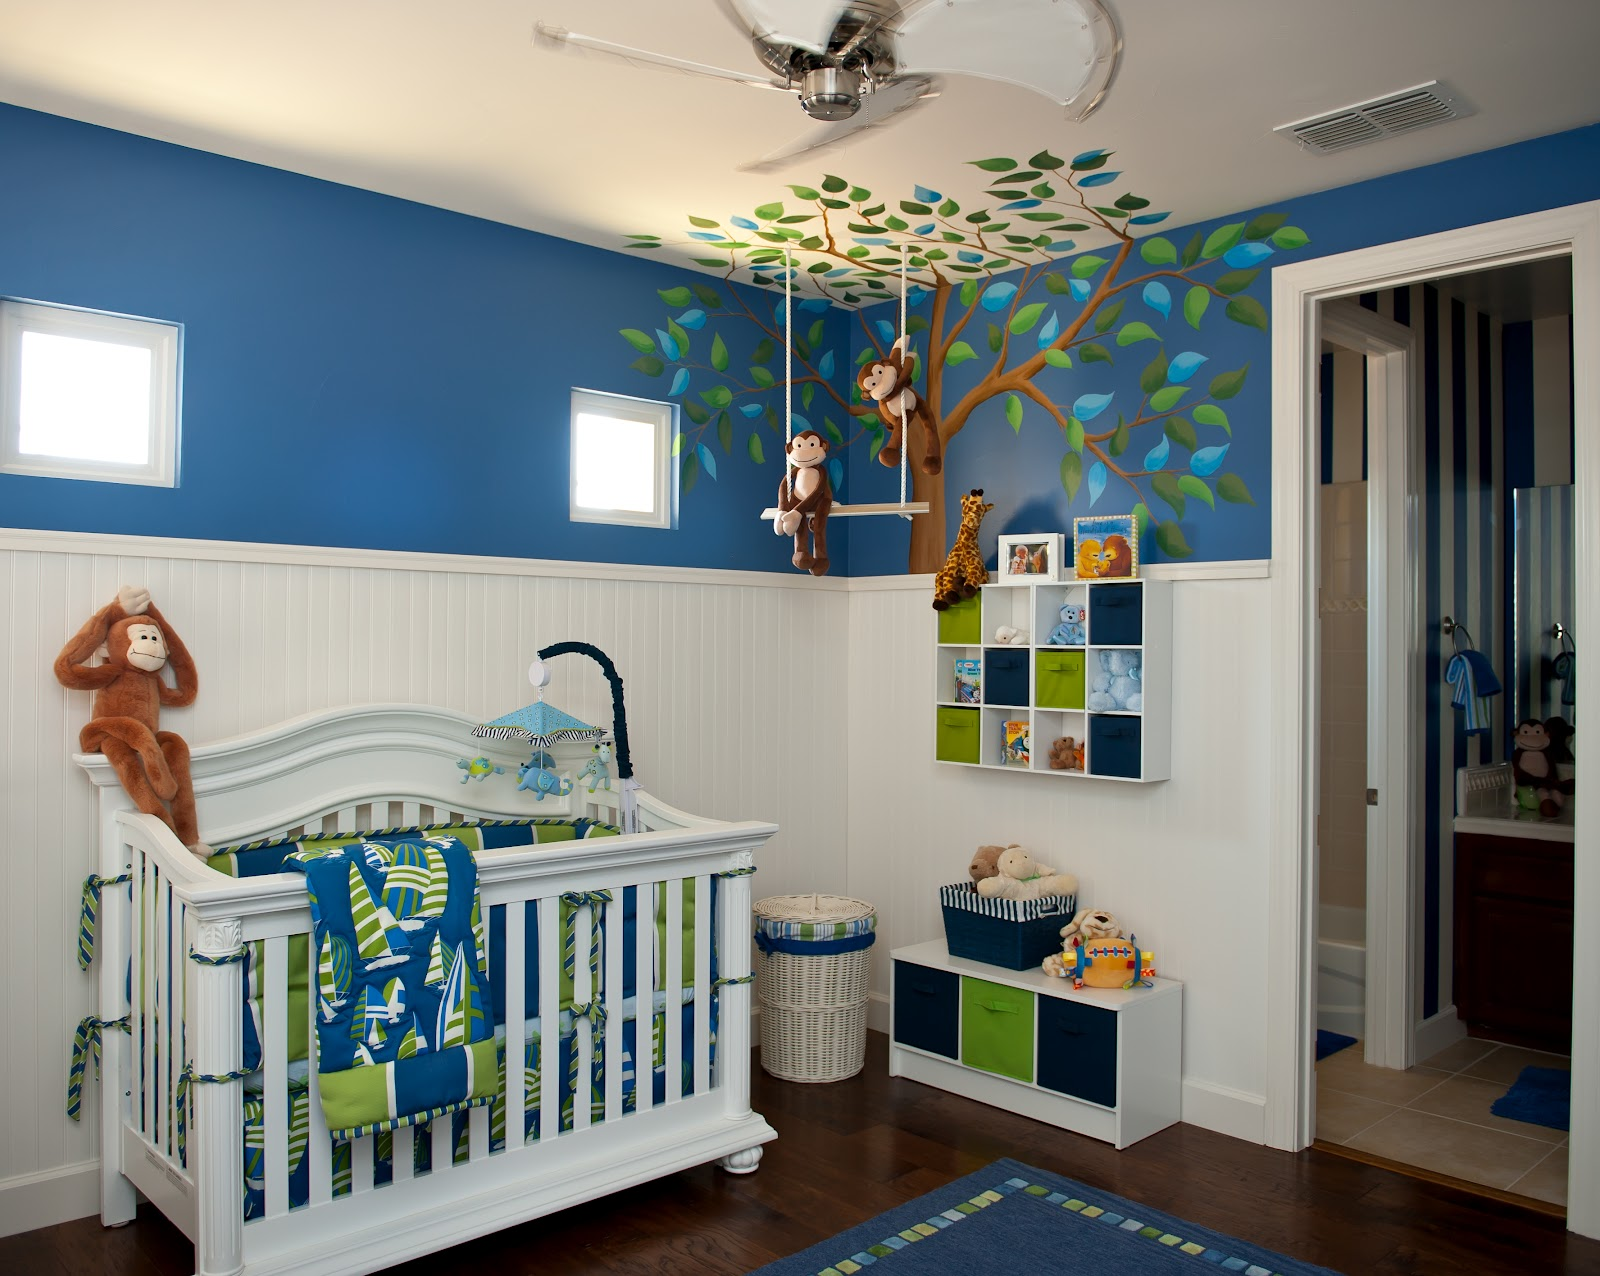 monkey business nursery design dazzle adorable monkey business nursery by sue vlautin of red geranium interiors vibrant colors with cool